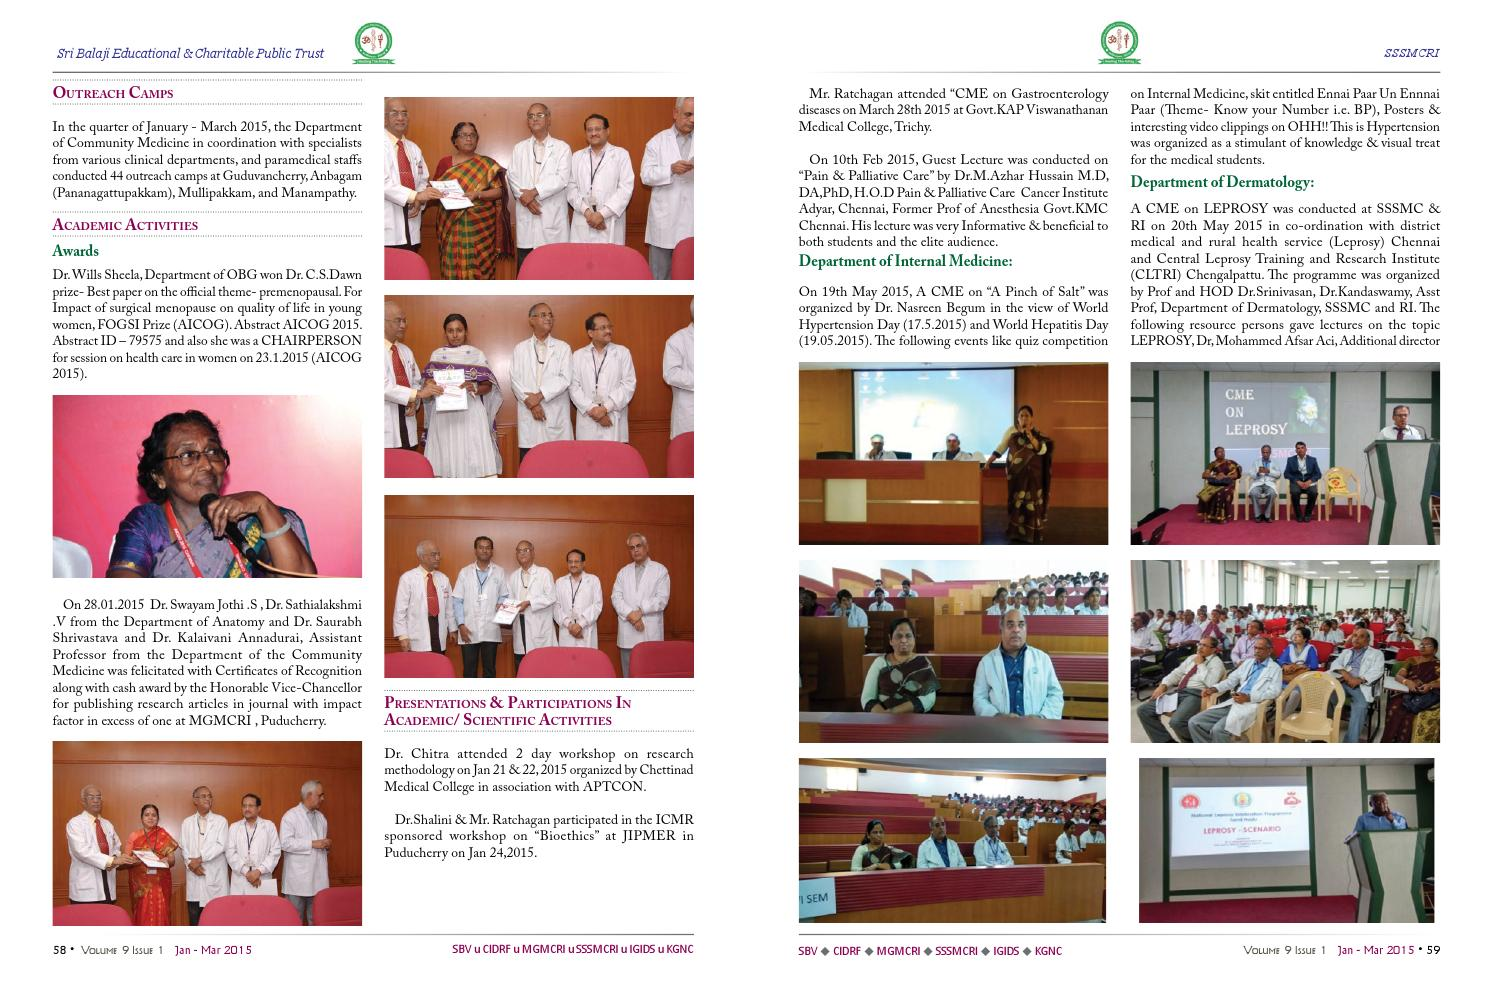 The chronicle vol9 iss1 jan mar 2015 by Dept of Medical